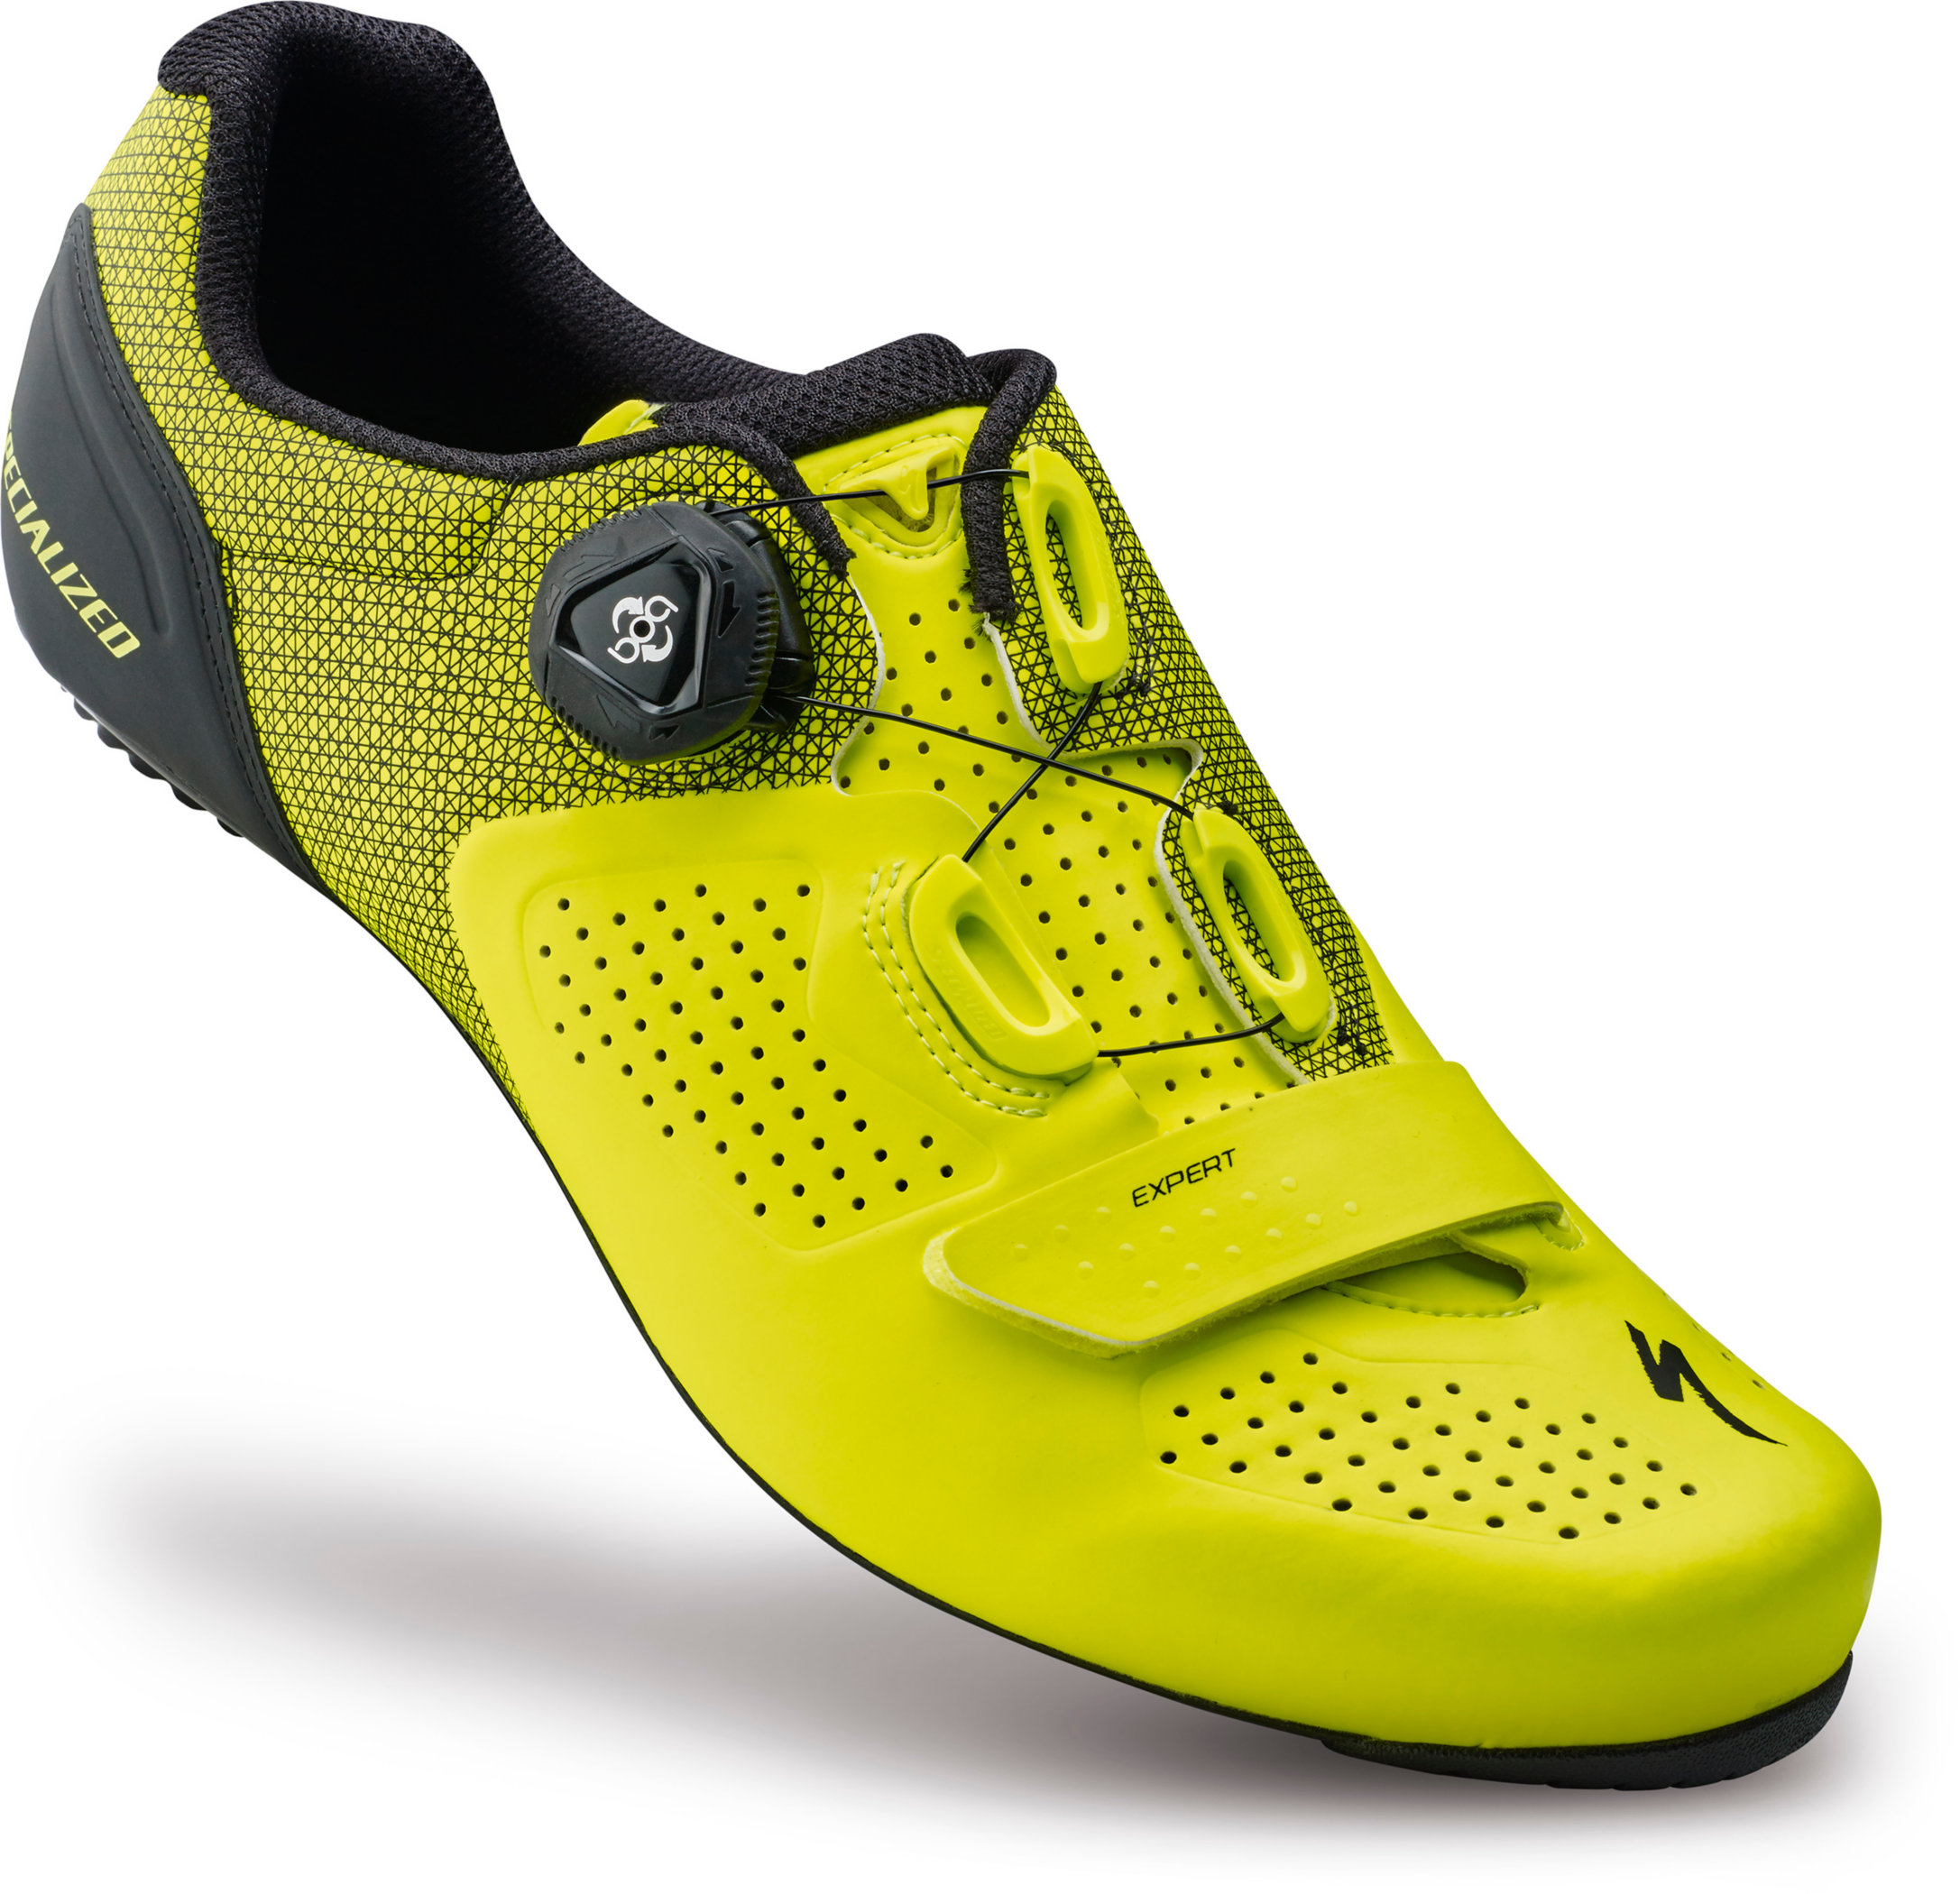 SPECIALIZED EXPERT RD SHOE NEON YEL 43/9.6 - Bikedreams & Dustbikes